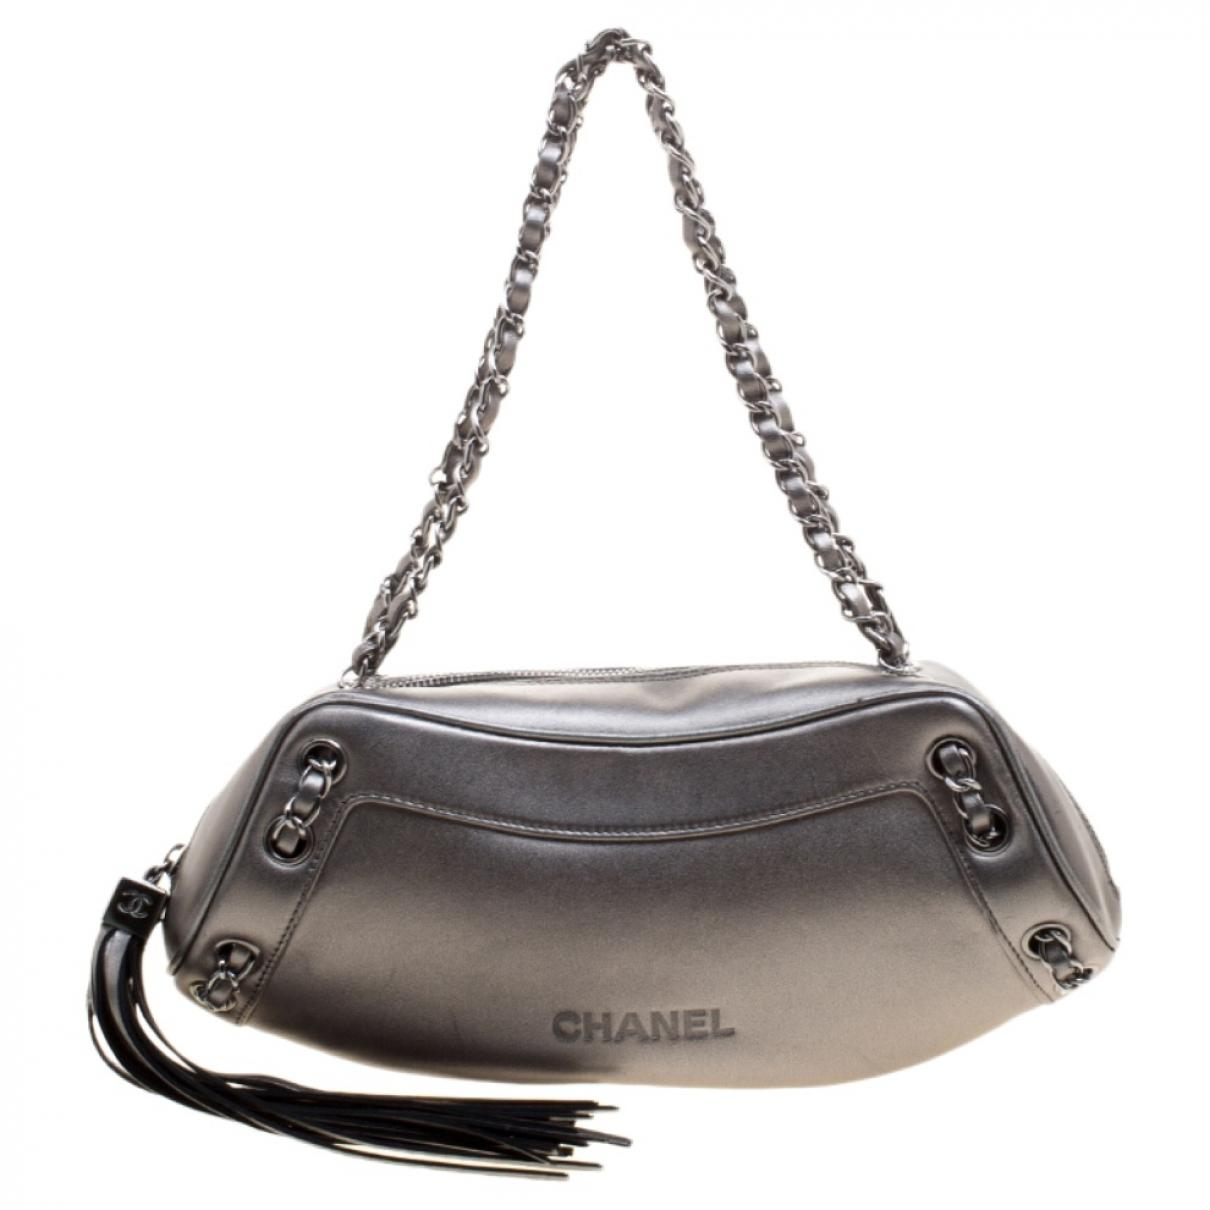 005bd52e07e2 Chanel Pre-owned Vintage Mademoiselle Grey Leather Handbags in Gray ...